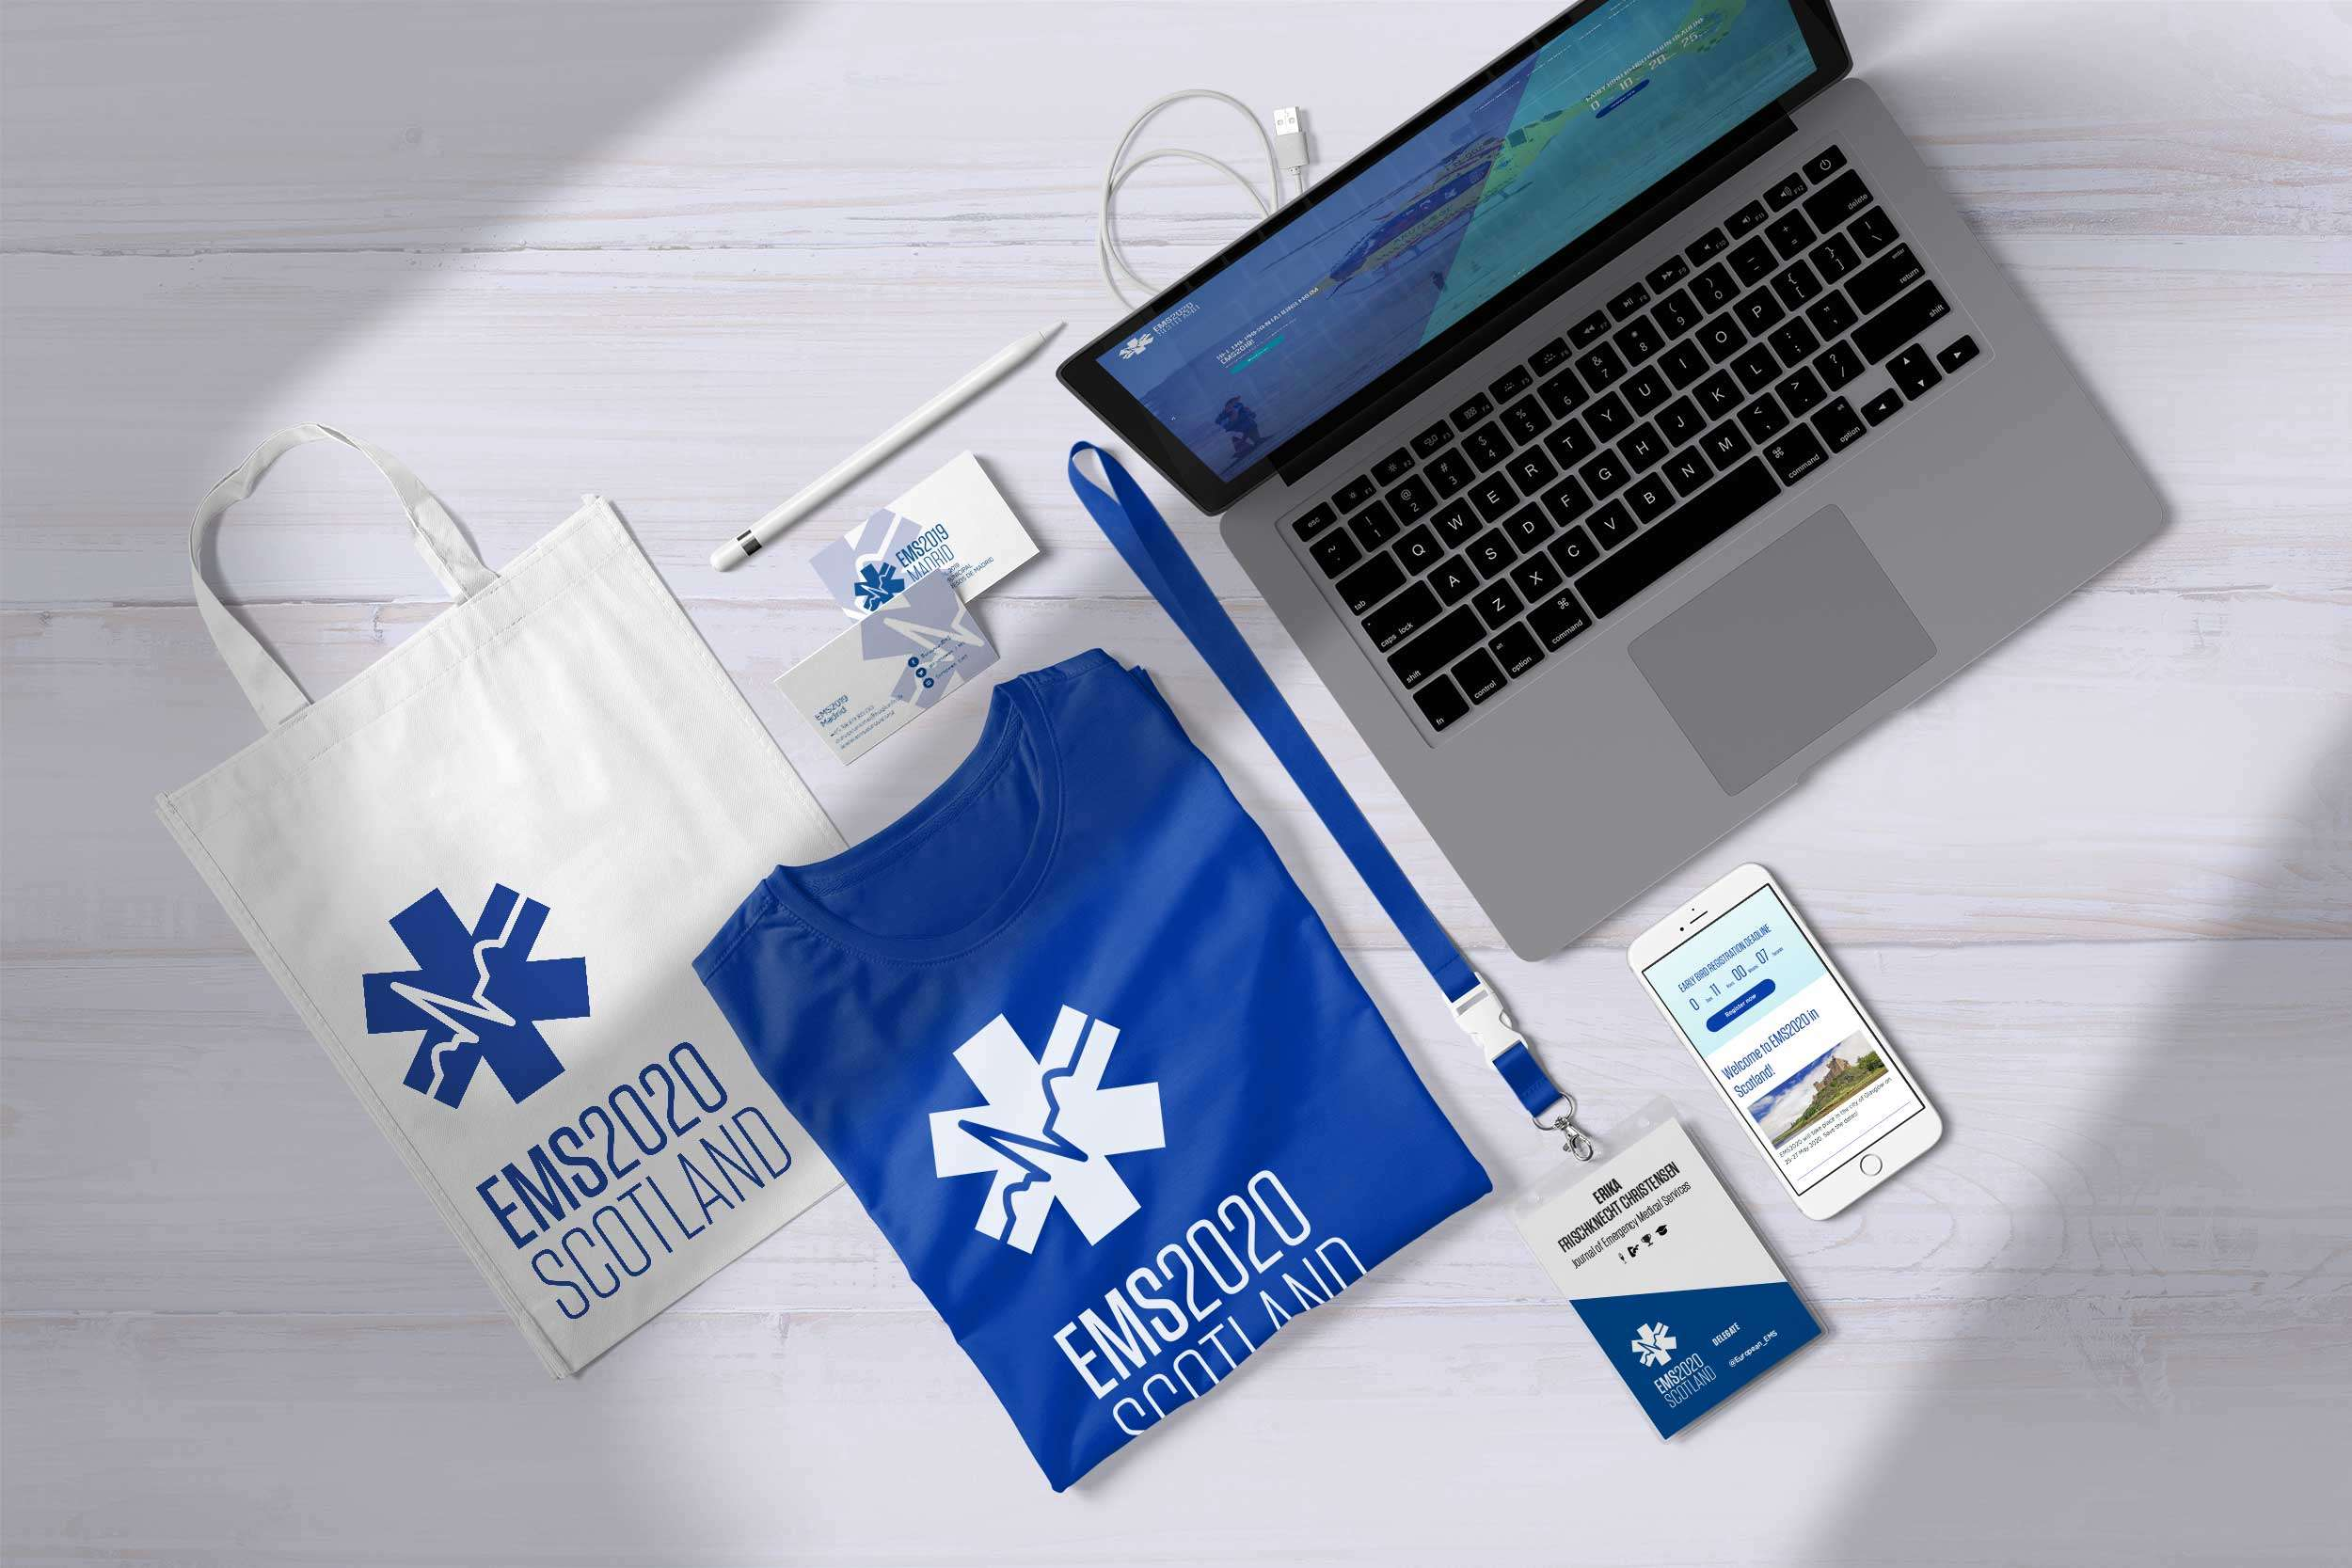 T-shirt, bags, ID Badge, for EMS Europe and their website on Macbook and iPhone